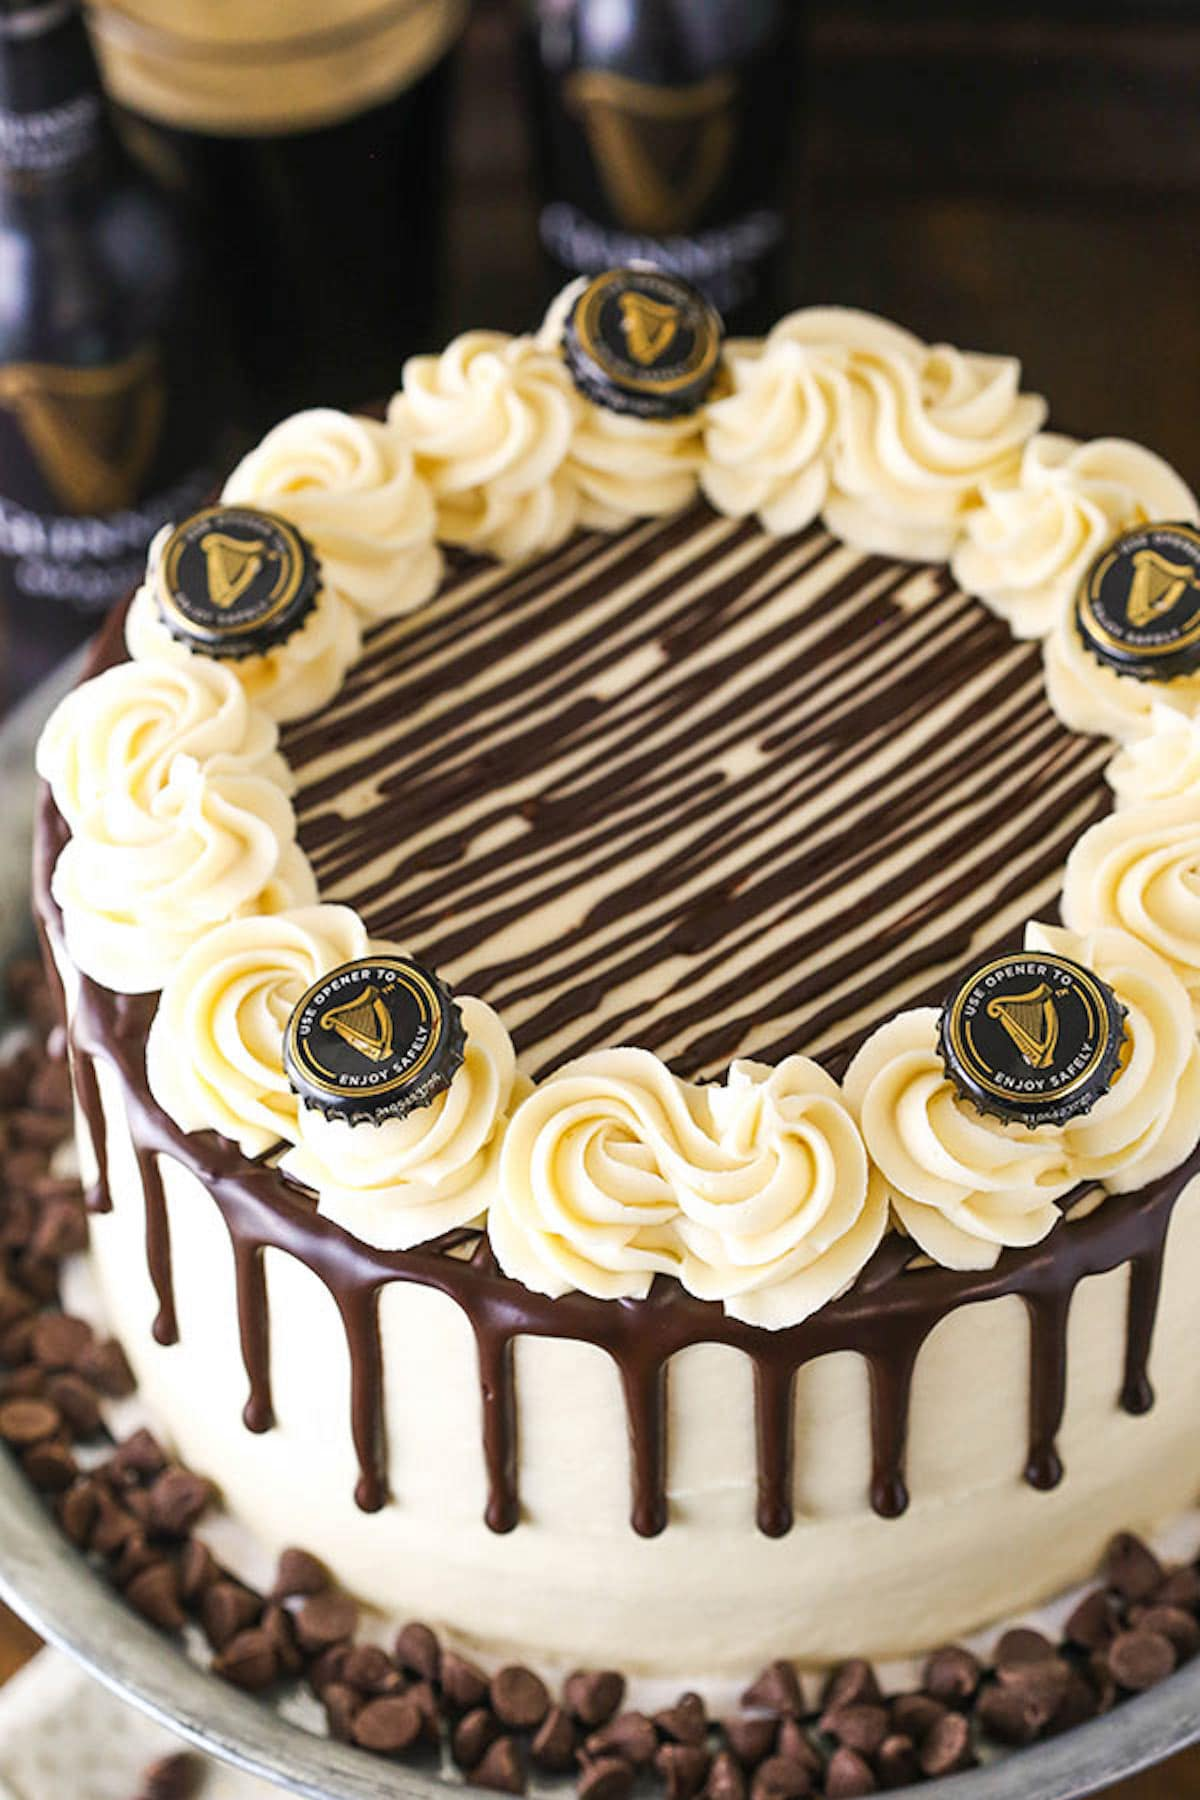 A Guinness Chocolate Layer Cake Decorated with Guinness Bottle Caps